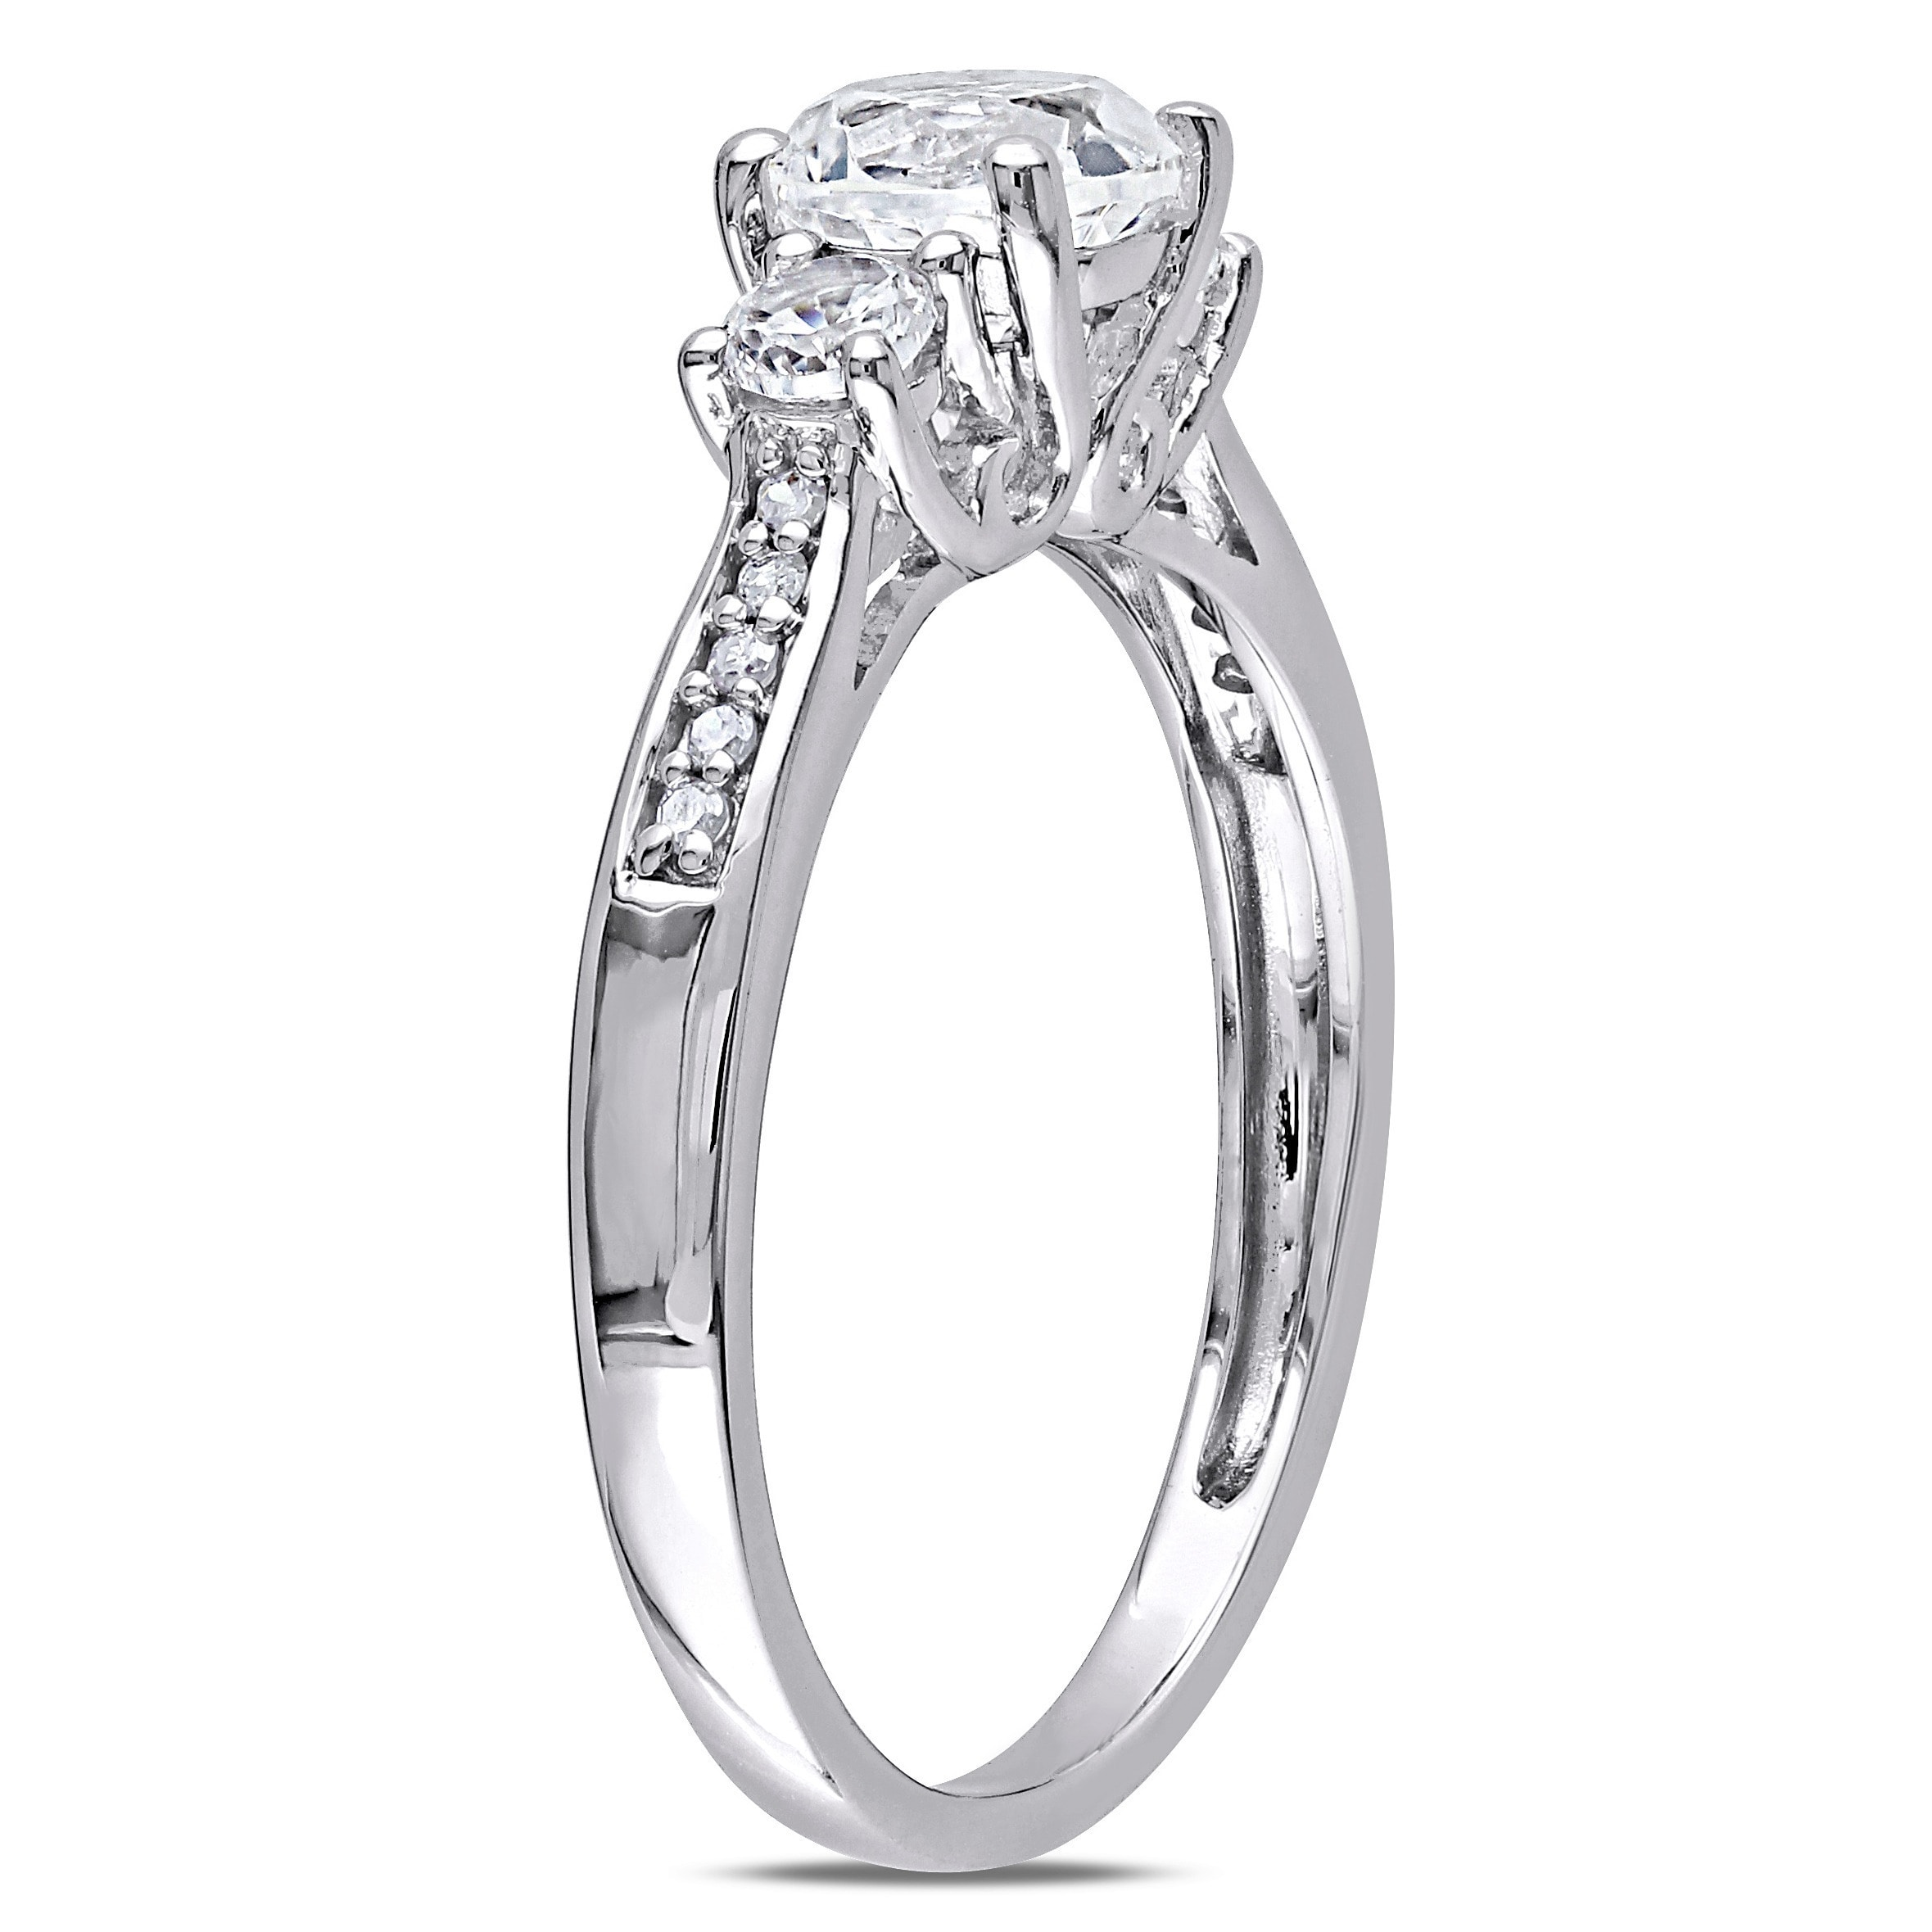 ring princess cut trillion rings diamond engagement white gold three stone trellis sku